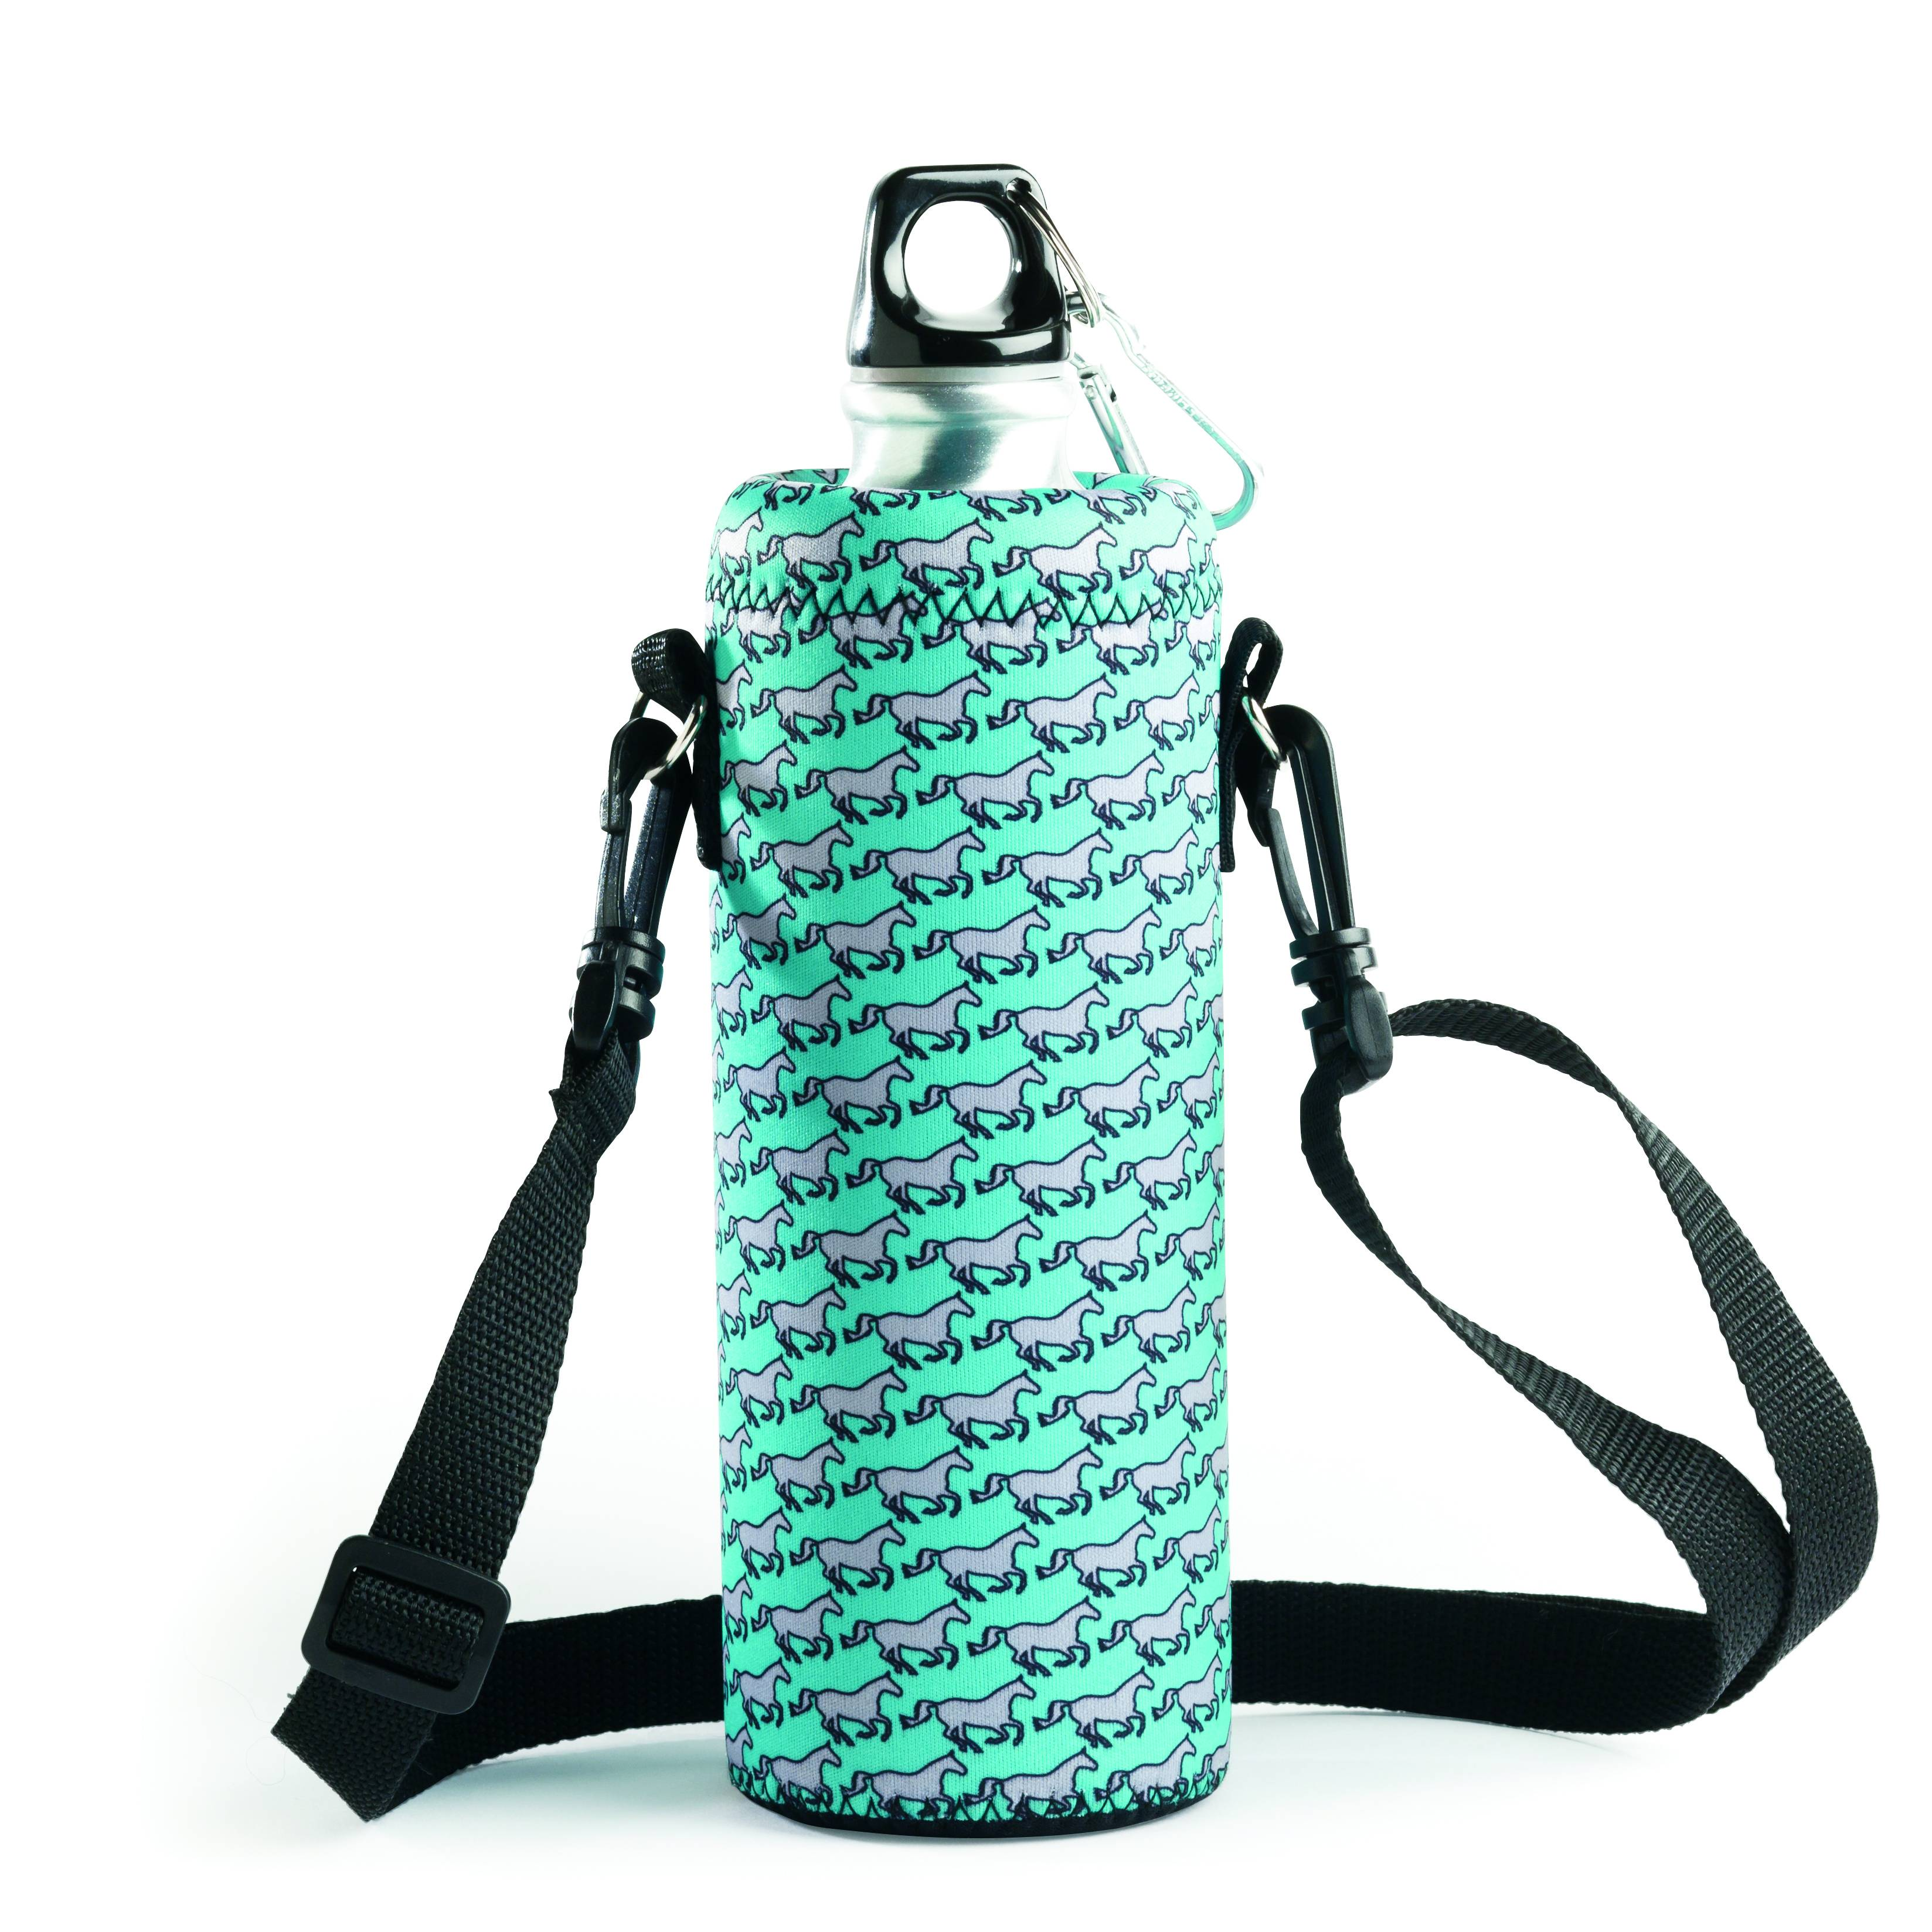 Kelley Tek Trek Neoprene Gallop Water Bottle Carrier